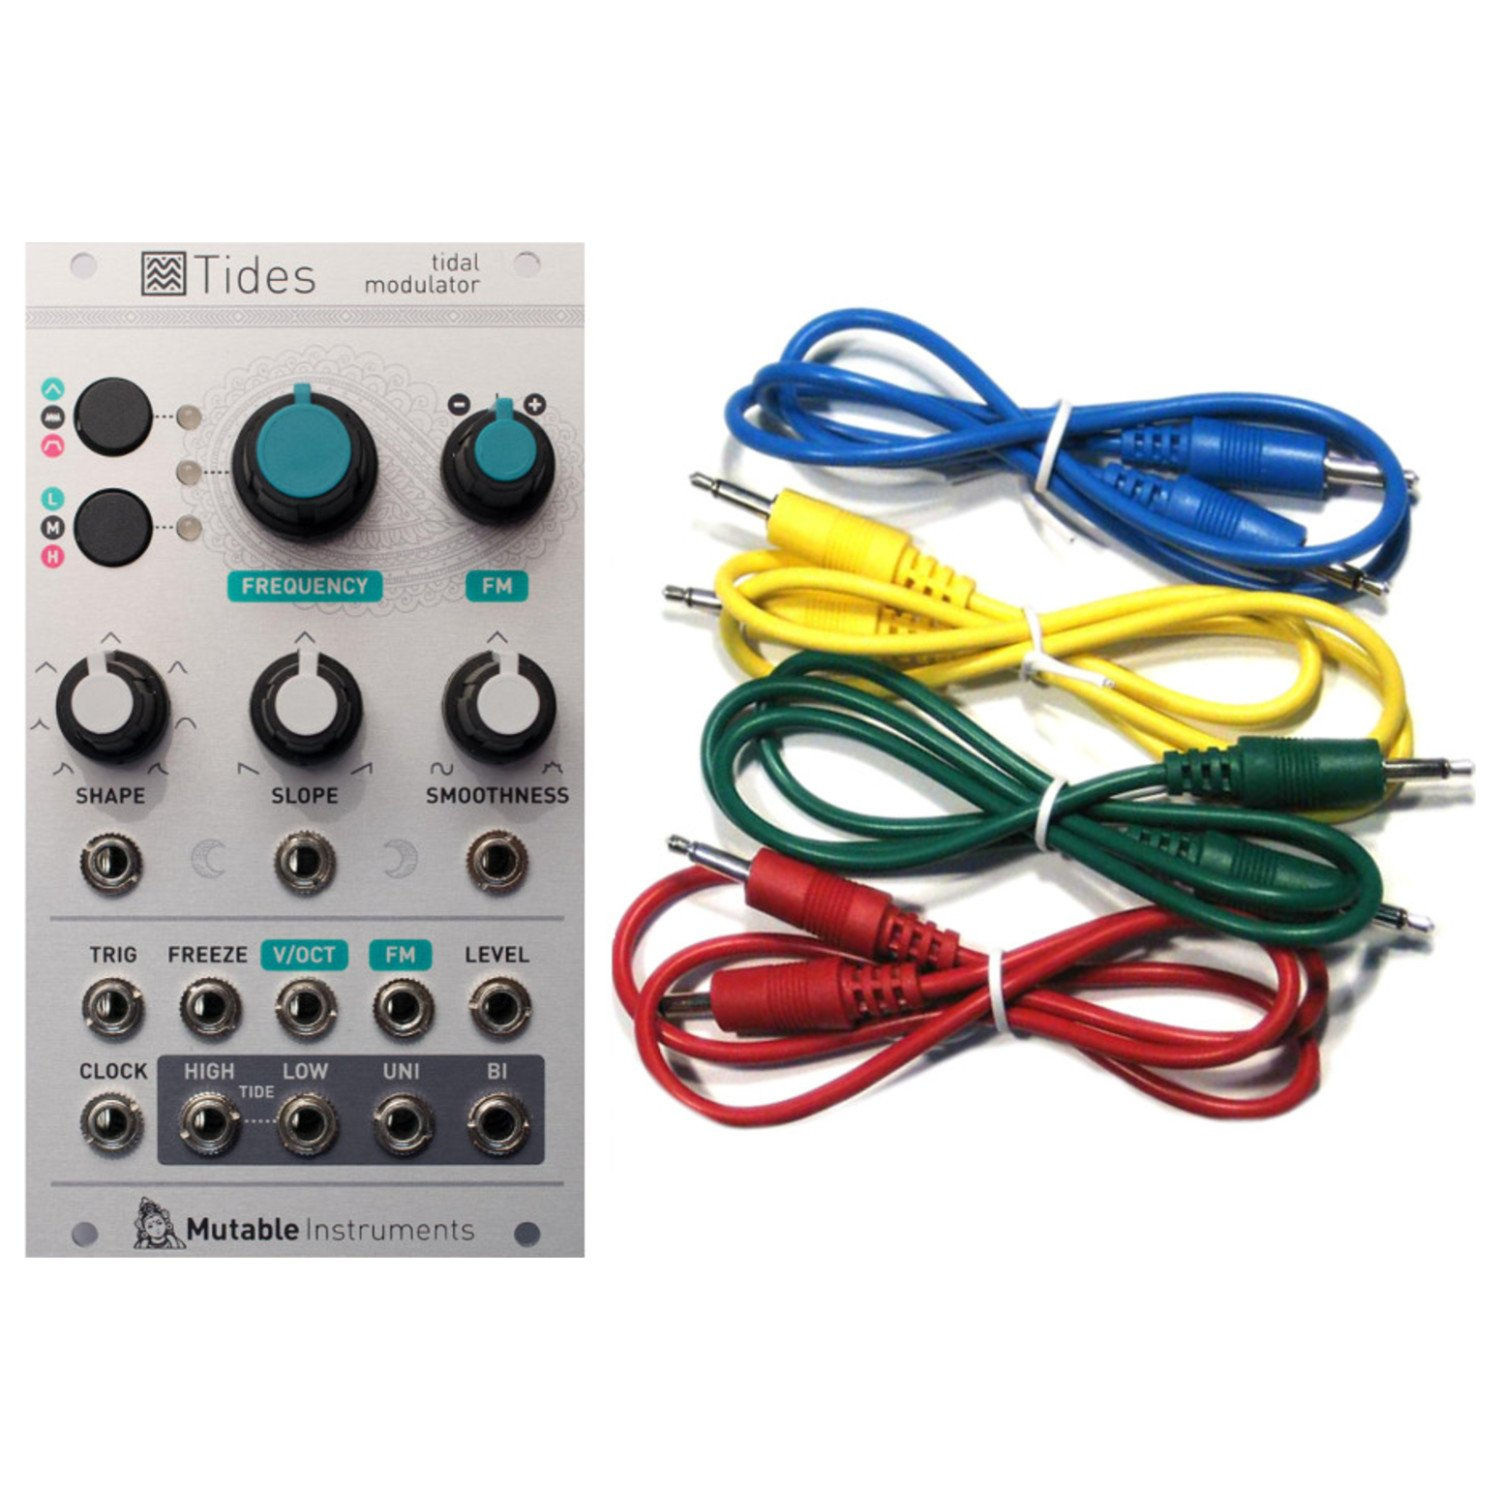 Mutable Instruments Tides Tidal Modulator Envelope Generator Eurorack Module w/ 4 Cables by Mutable Instruments (Image #3)